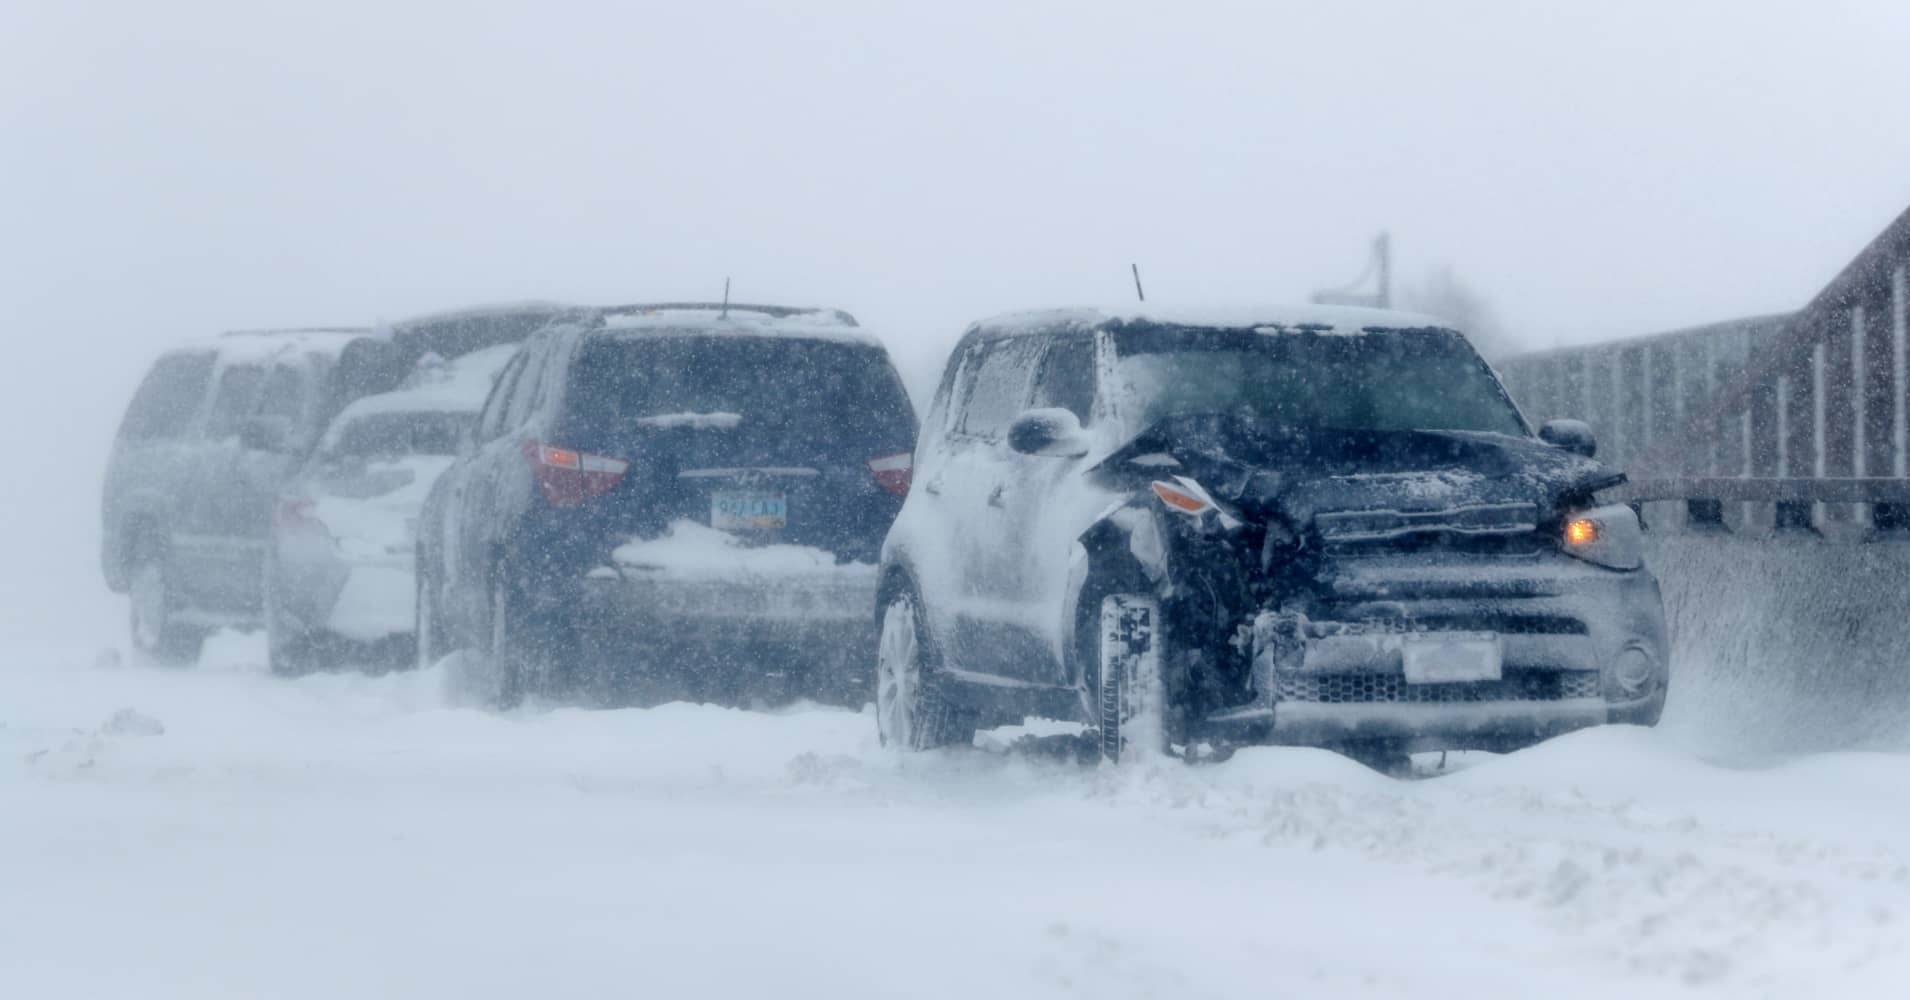 'Bomb cyclone' pushes east across the US leaving blizzards, floods and tornadoes in its wake